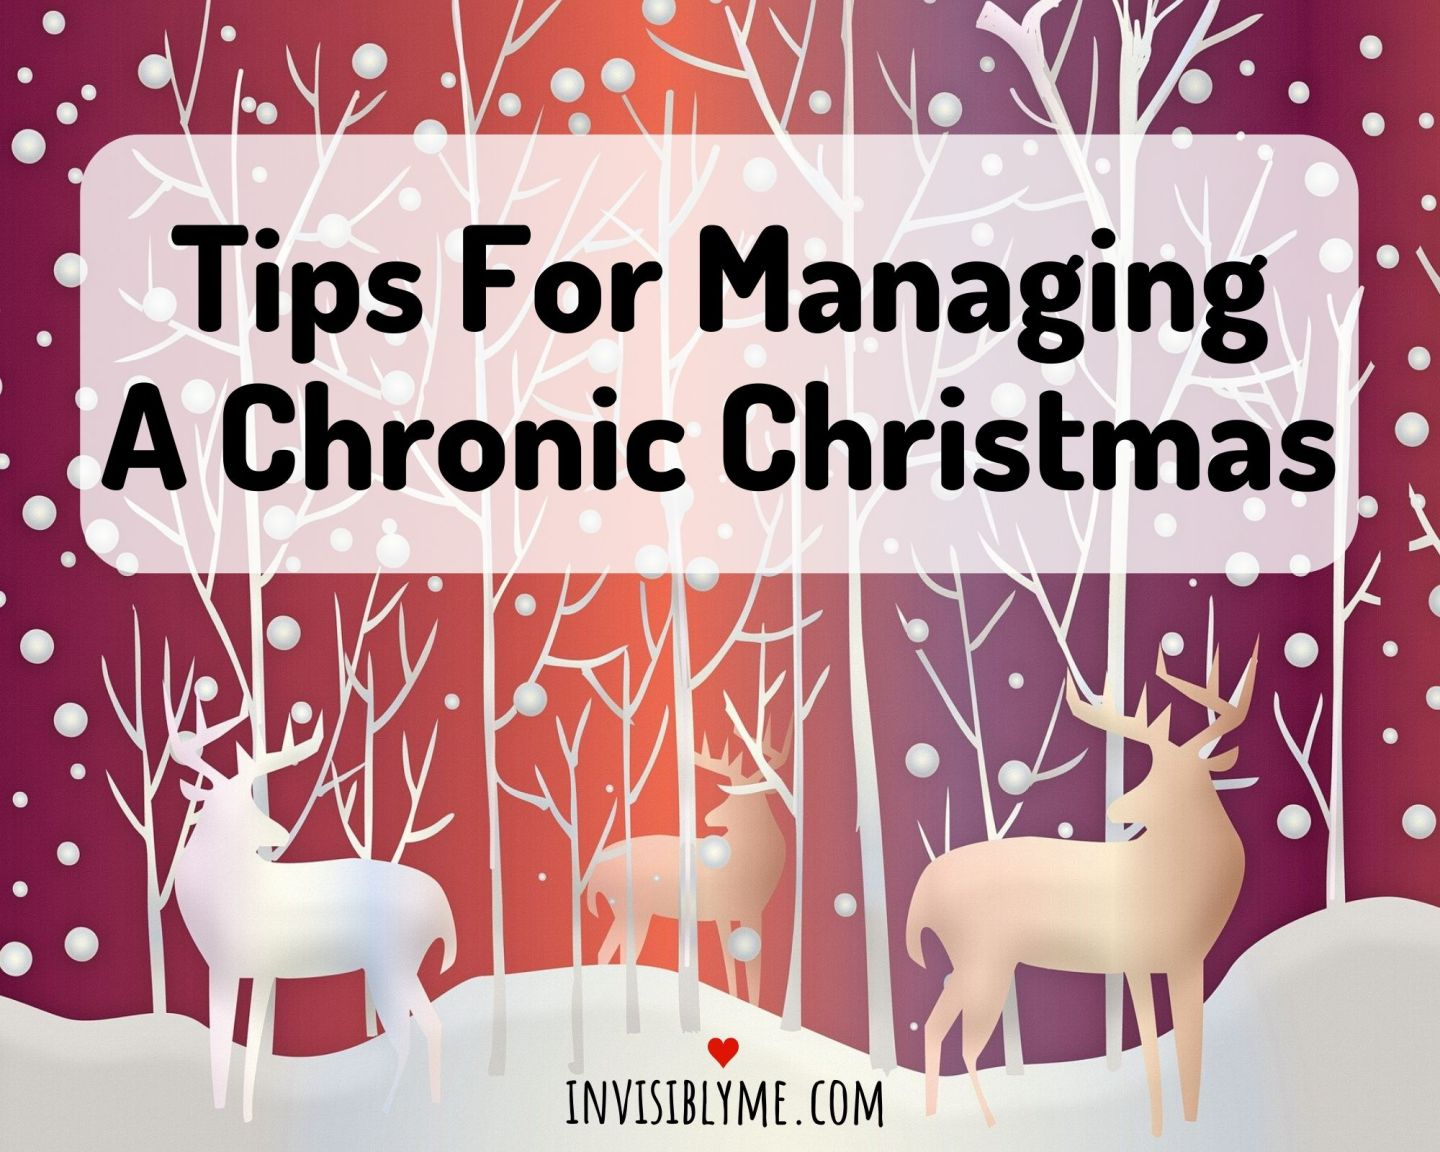 Tips for Managing A Chronic Christmas